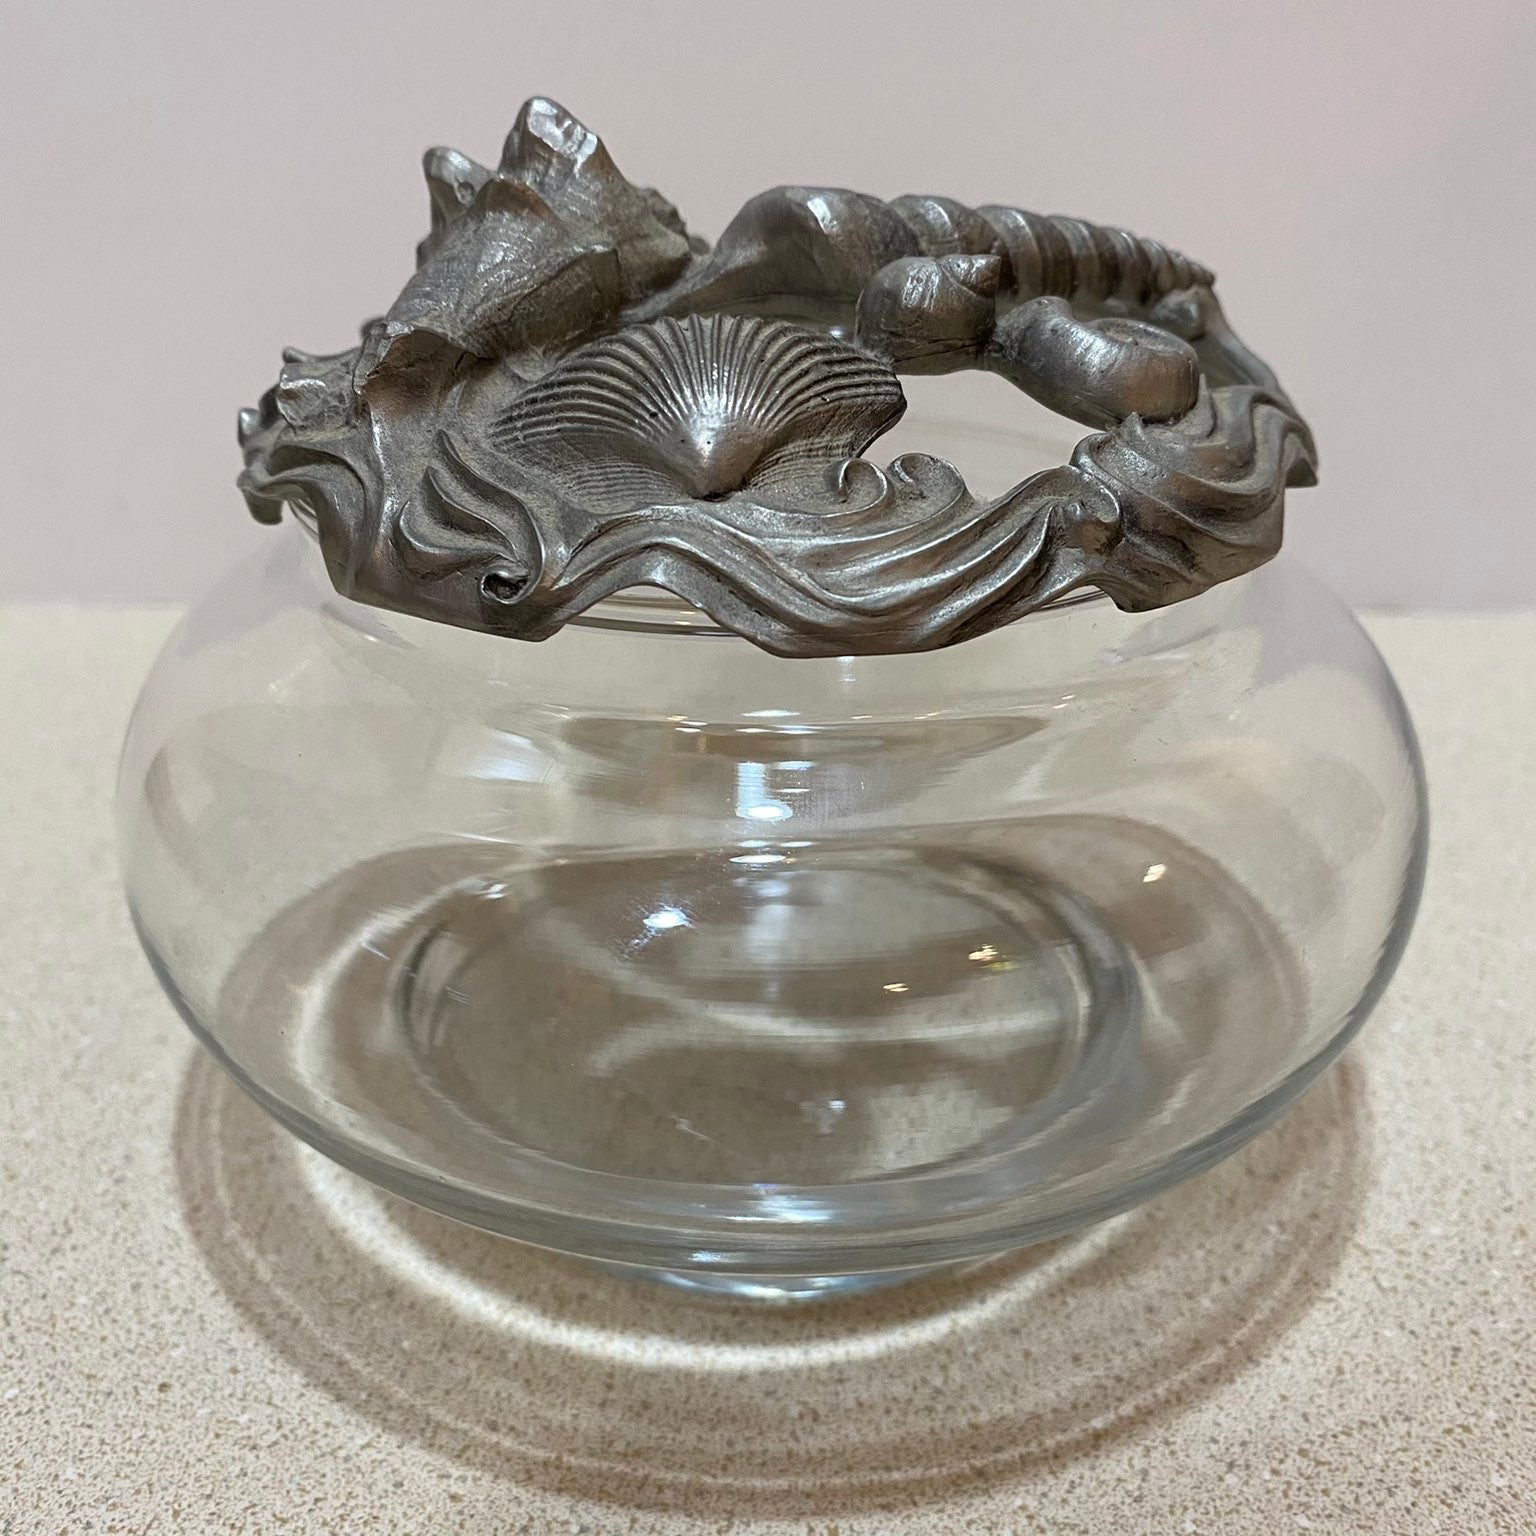 Pewter and Glass Display Dish